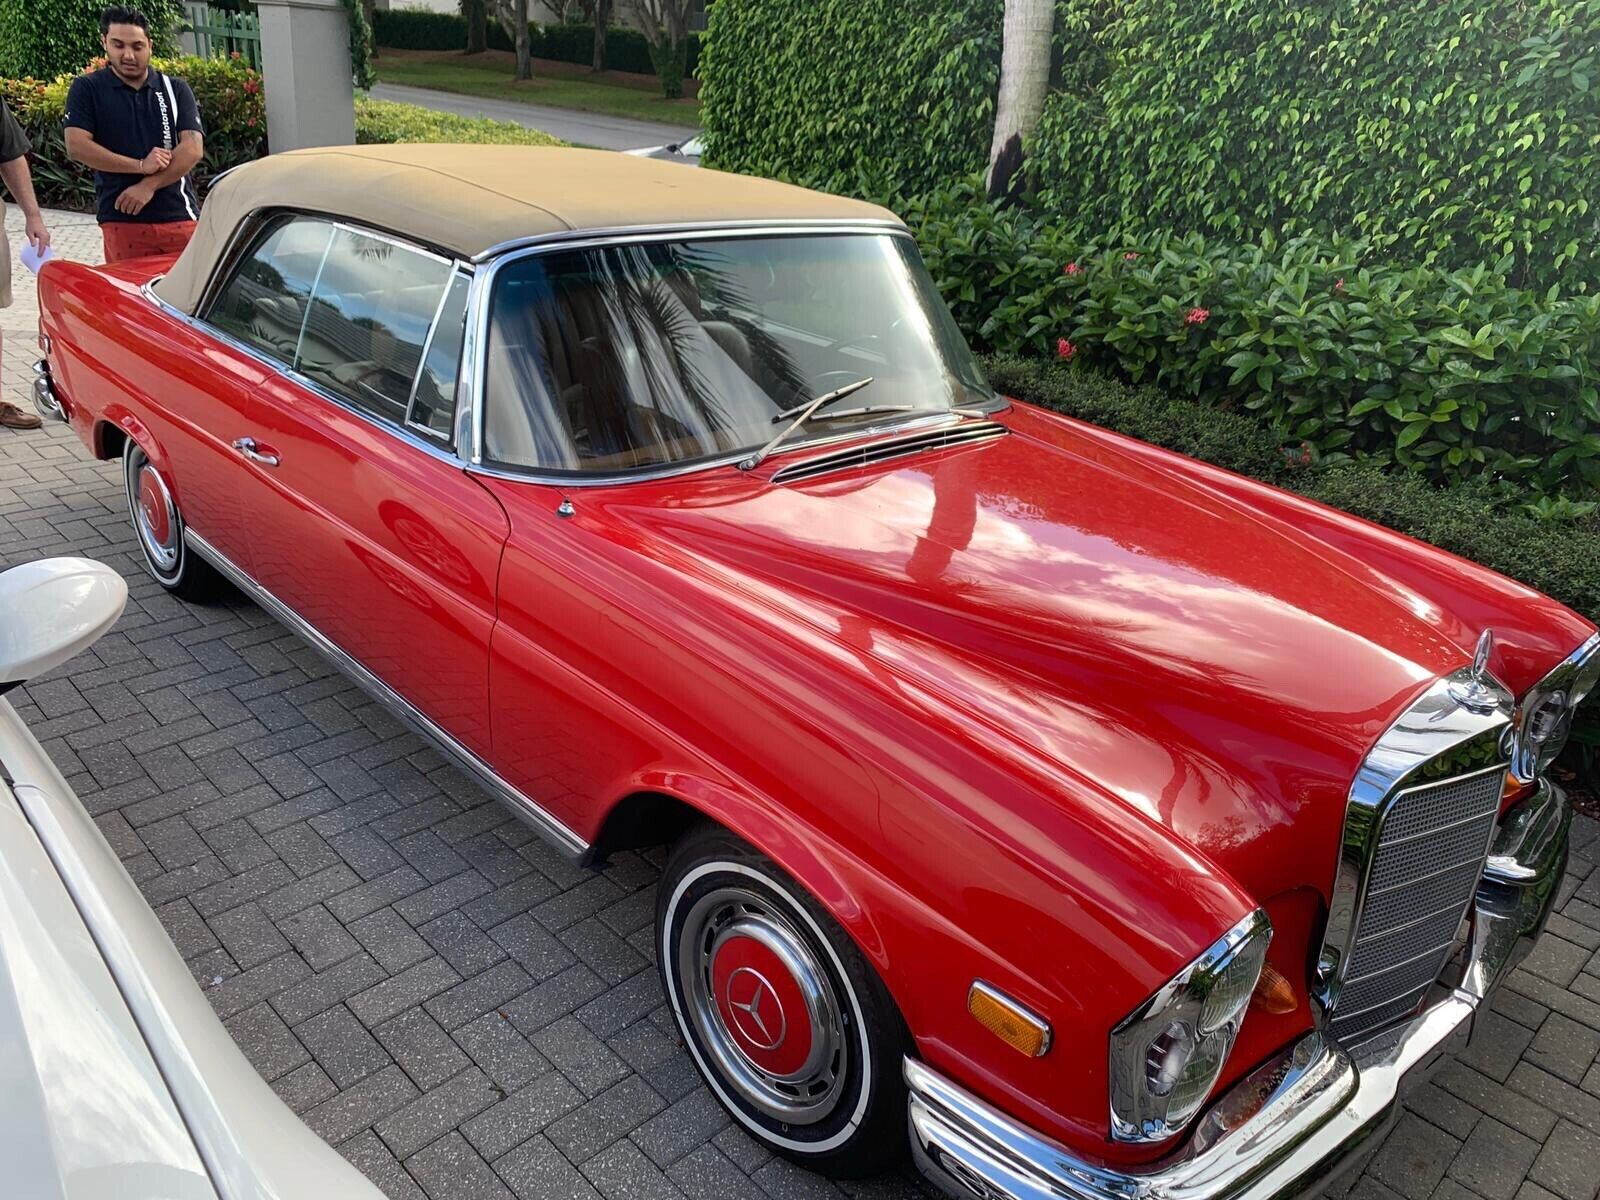 Mercedes-Benz 280 SE factory Cabriolet  1969 high grill, priced to sell!